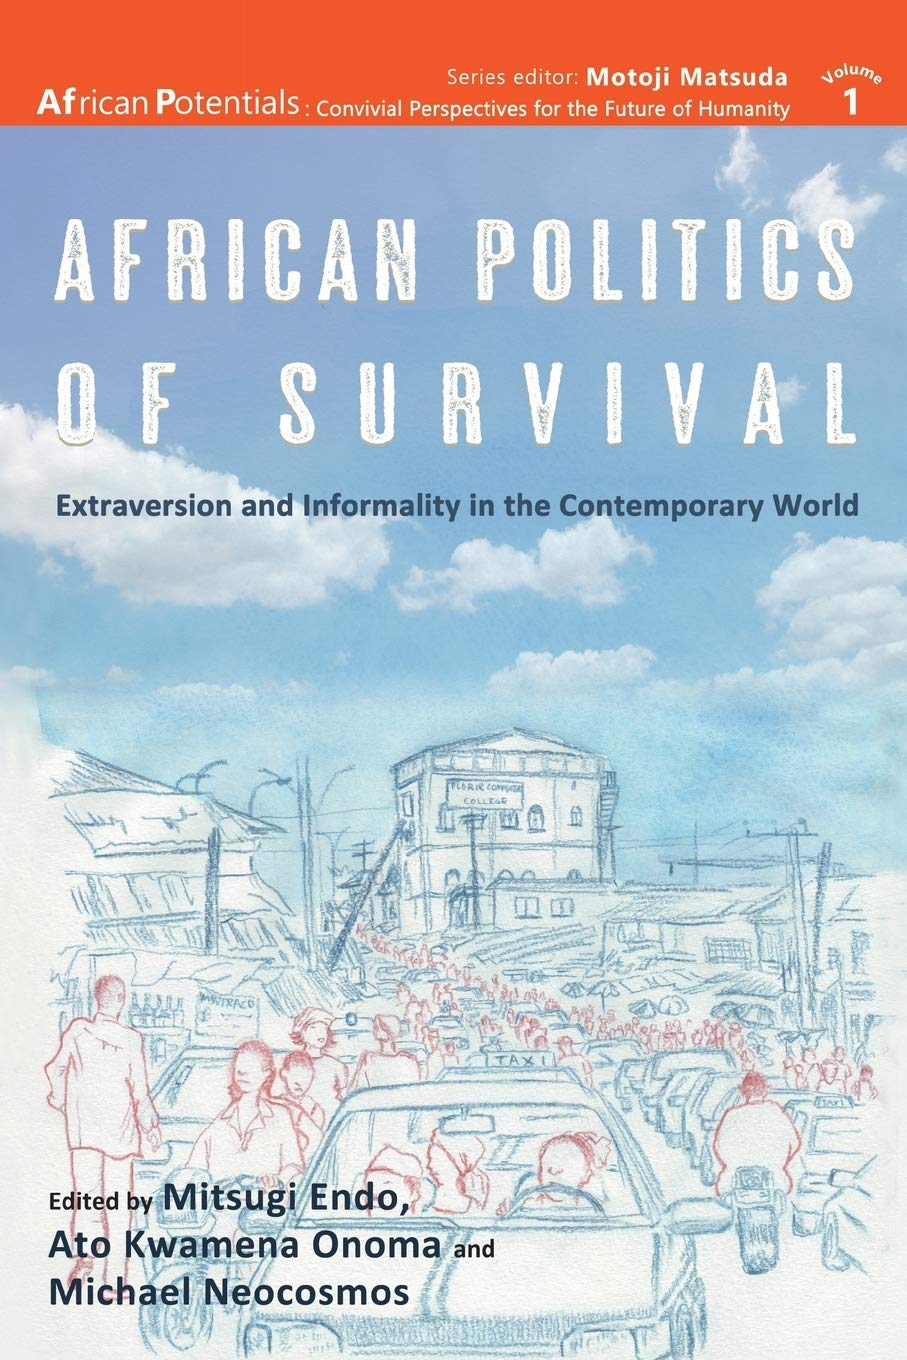 African Politics of Survival: Extraversion and Informality in the Contemporary World